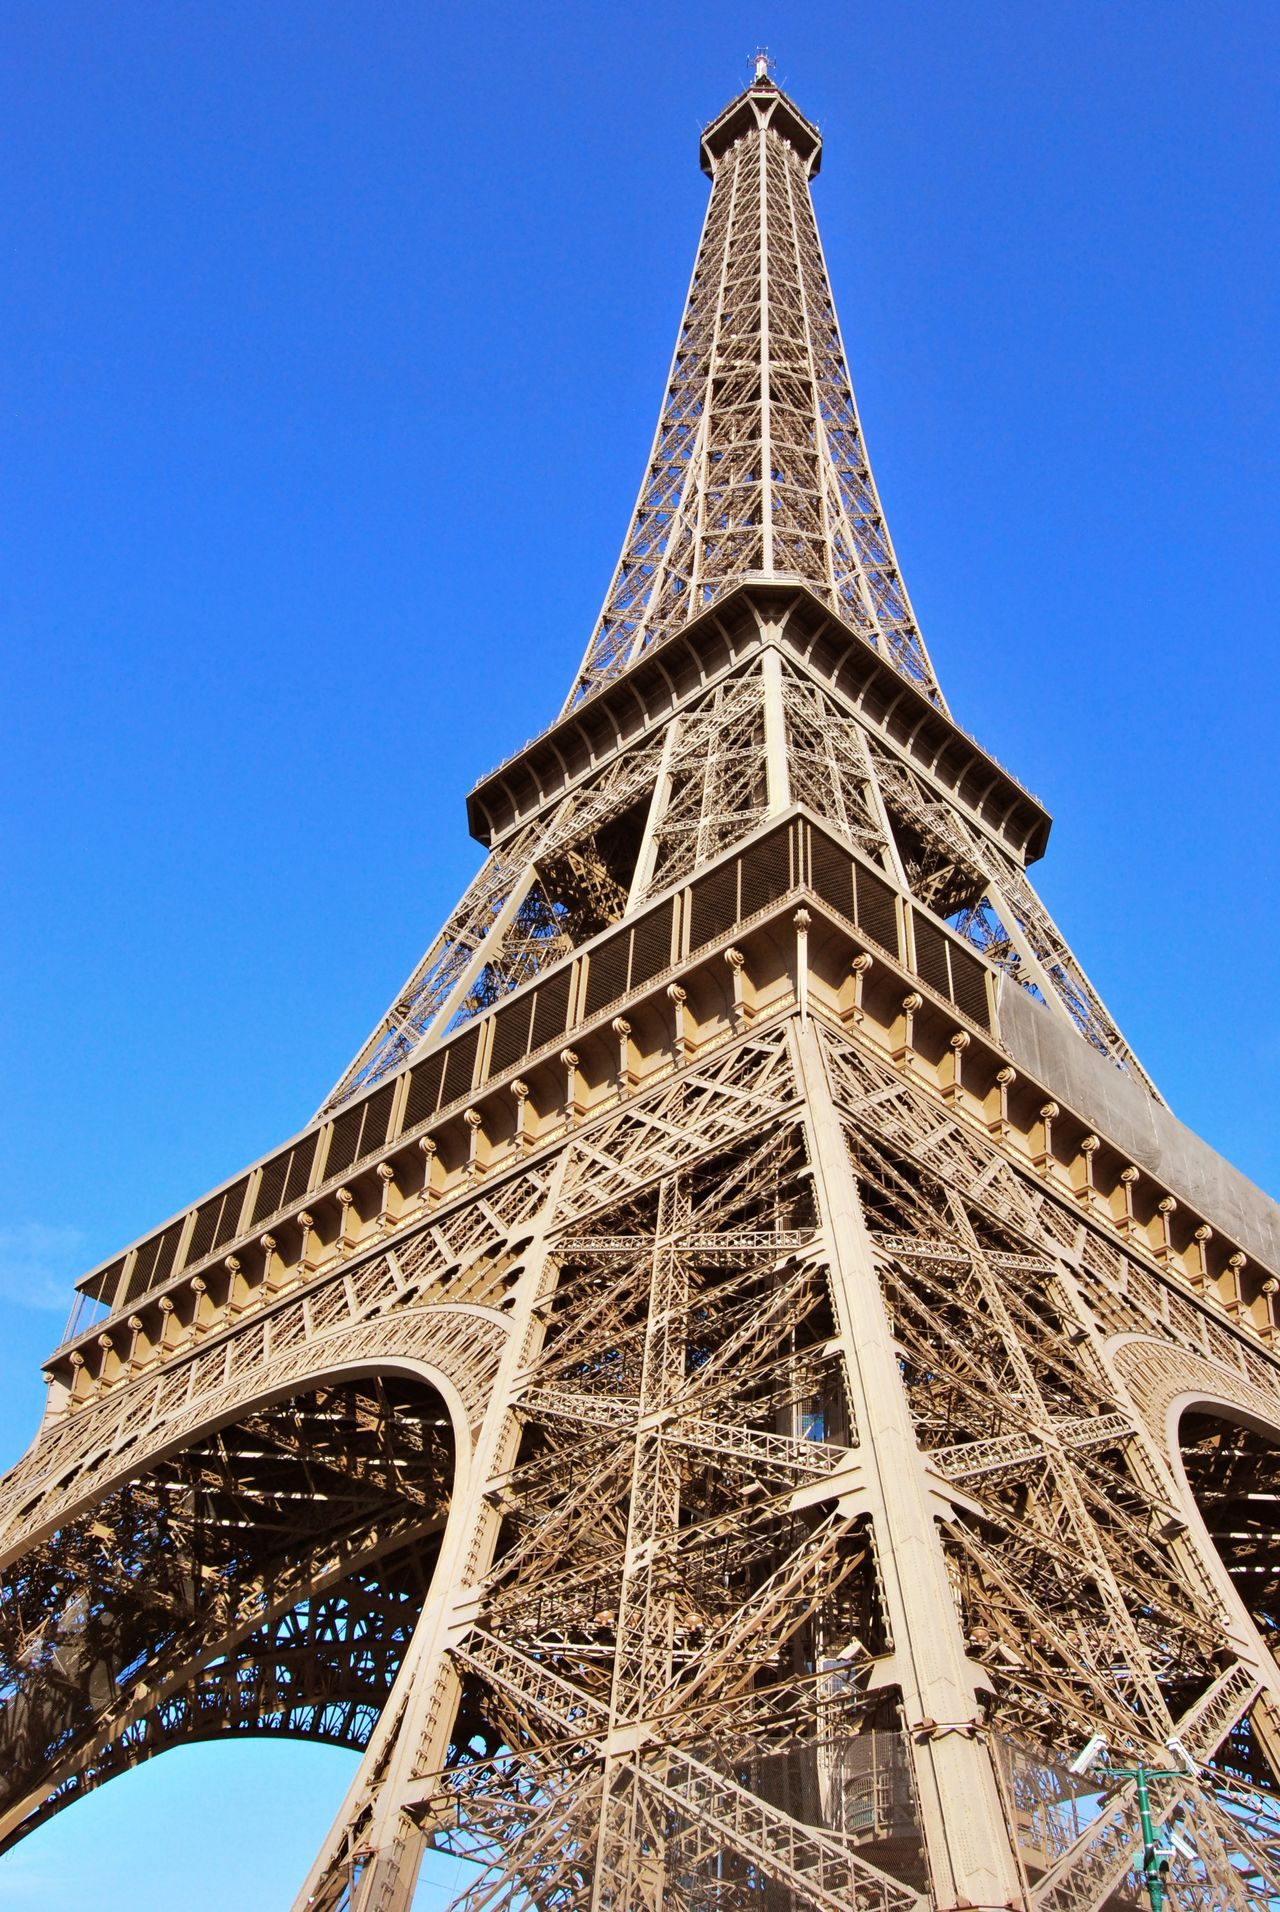 Eiffel tower Architecture Blue Building Exterior Built Structure City Clear Sky Cultures Day History Low Angle View Monument No People Outdoors Sky Tourism Tower Travel Destinations